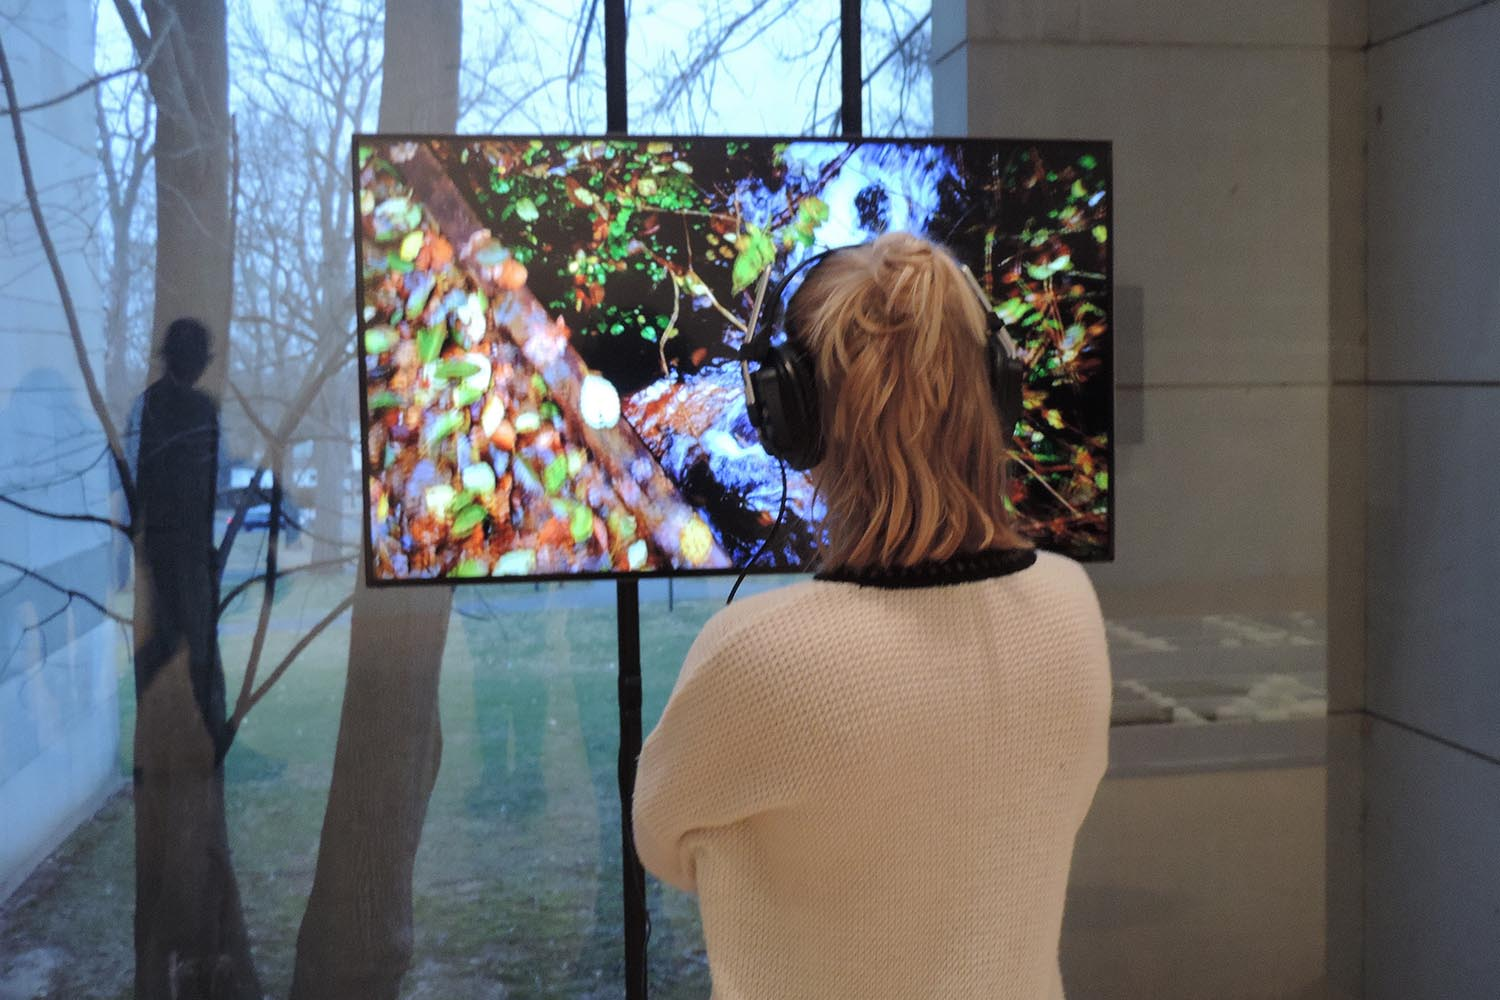 The exhibit,Audible Bacillus, opened at the Ezra and Cecile Zilkha Gallery on Jan. 29.